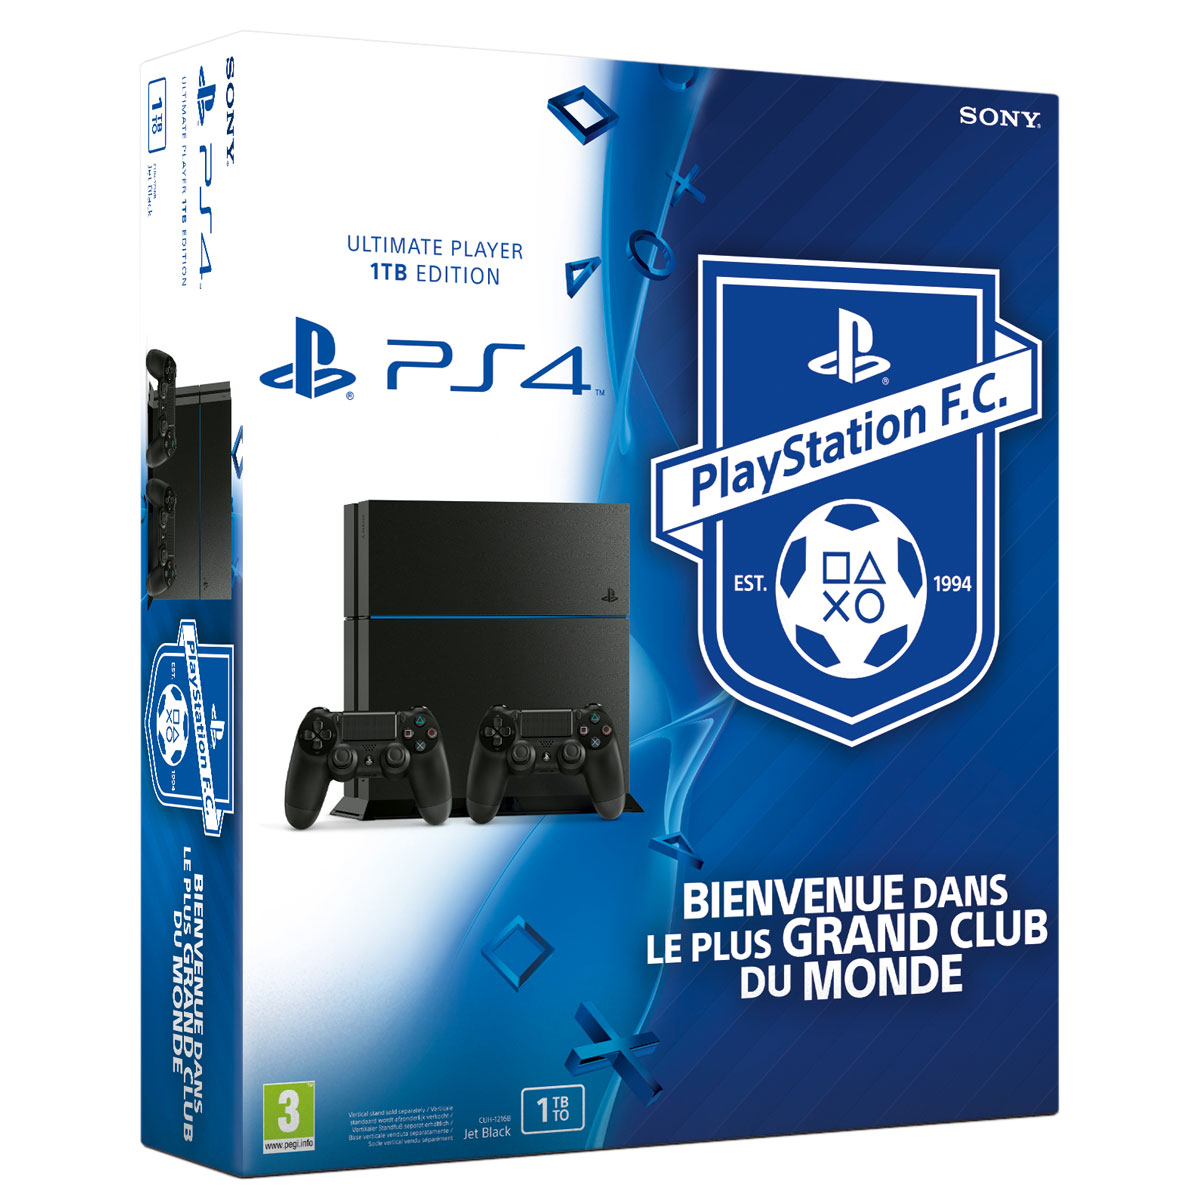 sony playstation 4 playstation football club 1 to. Black Bedroom Furniture Sets. Home Design Ideas